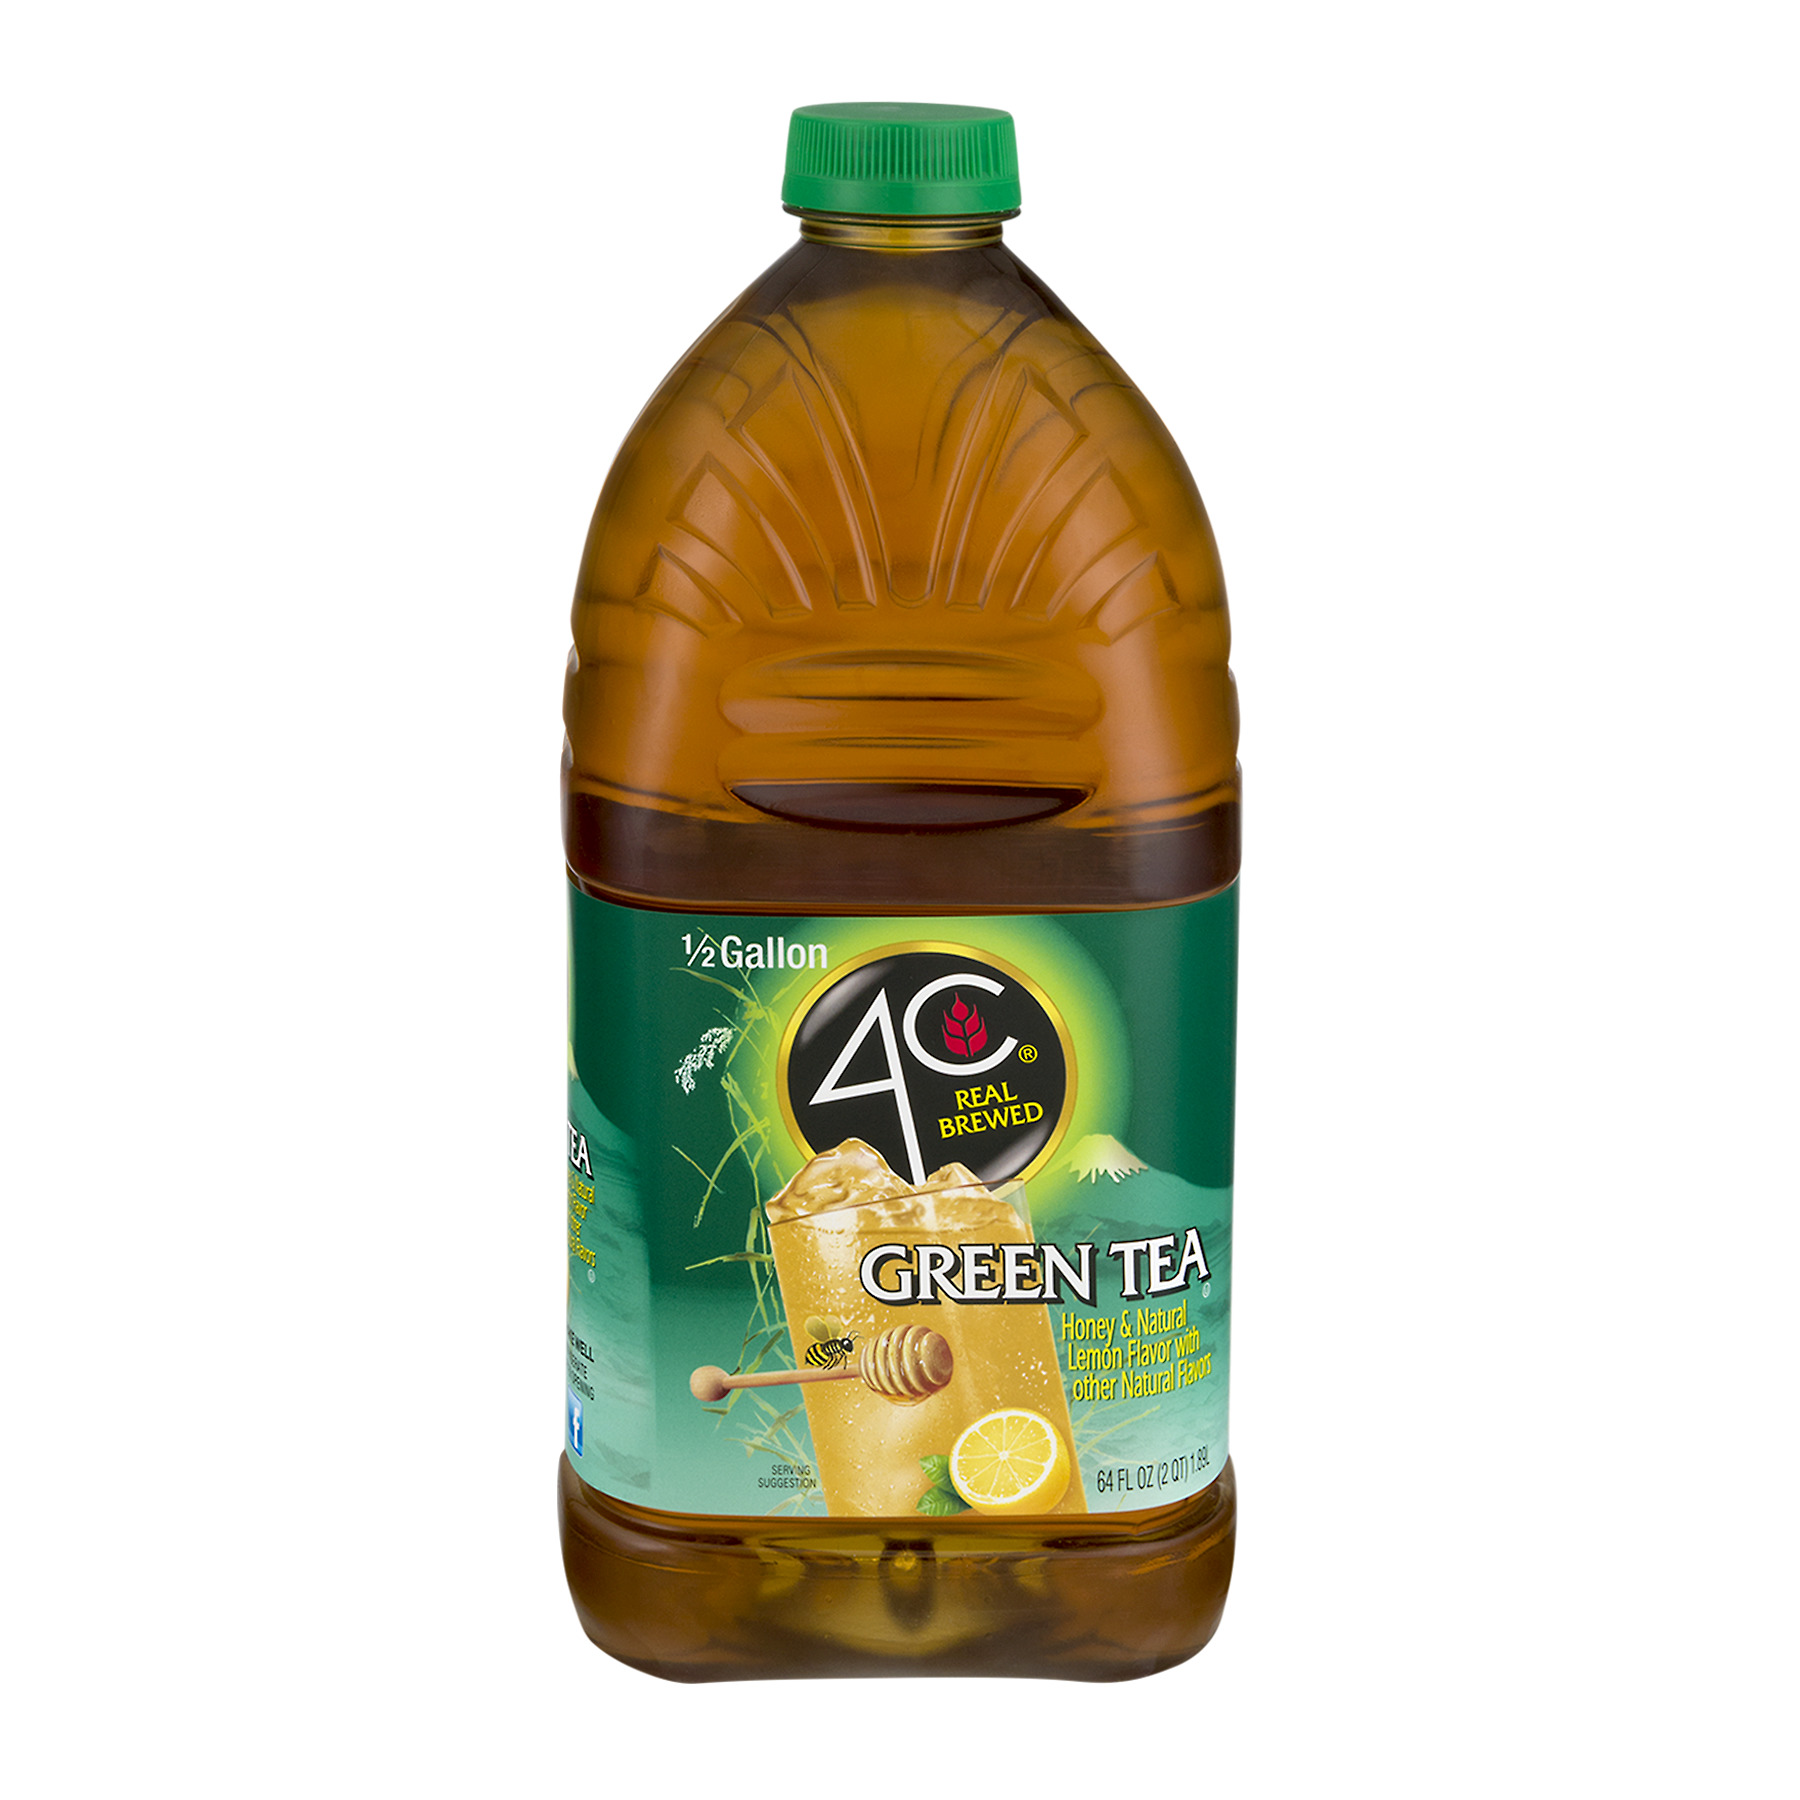 4C Honey & Natural Lemon Flavor Green Tea, 64 Fl. Oz.